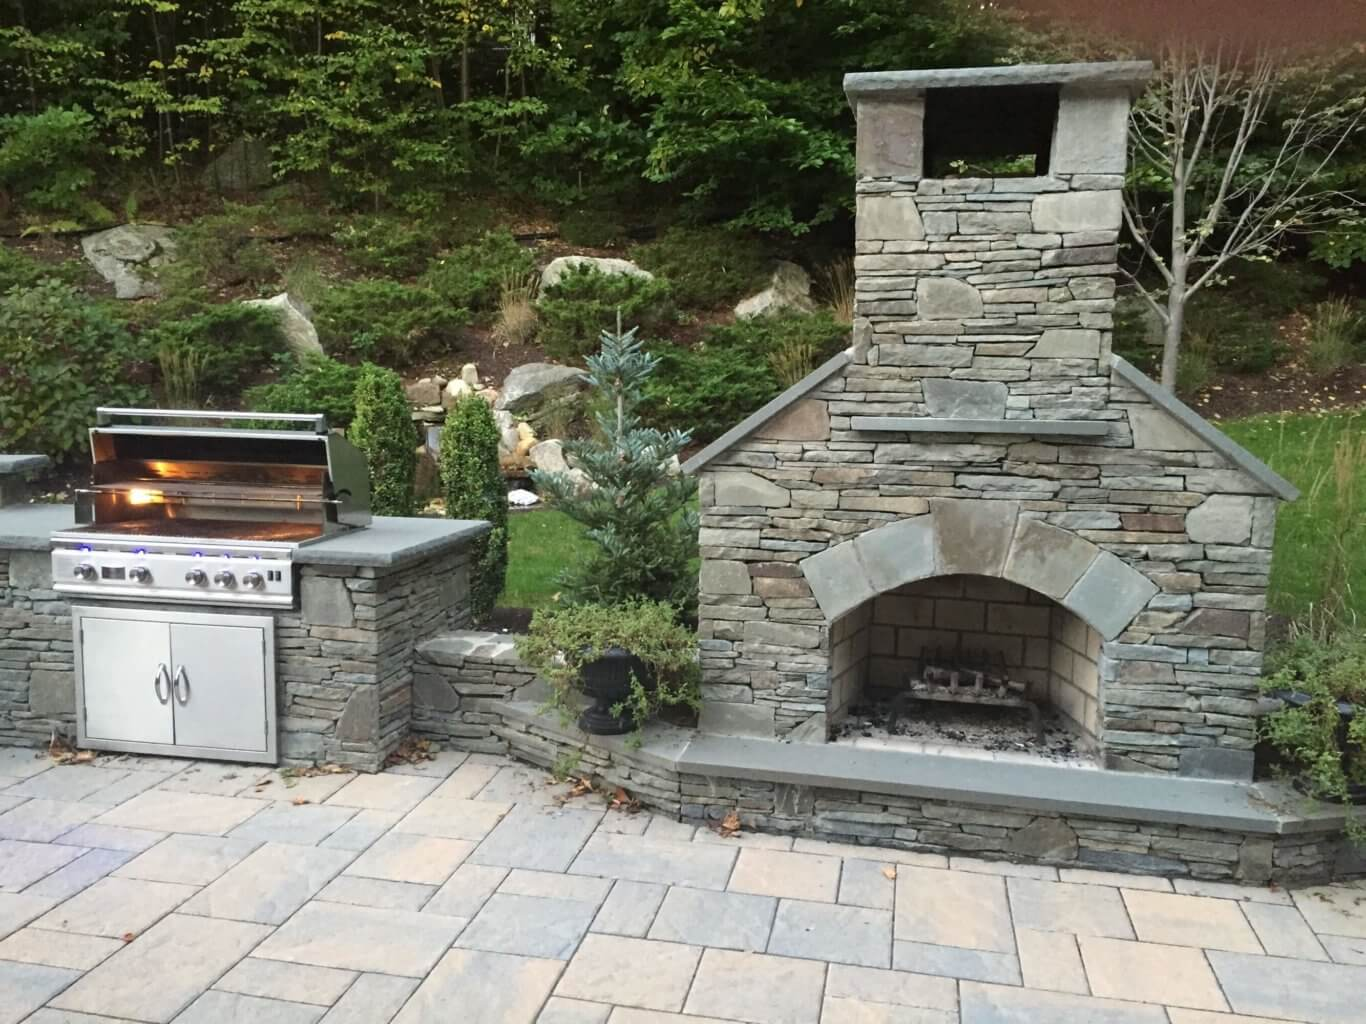 Outdoor Fireplace Kit - Contractor Series - for Easy ...